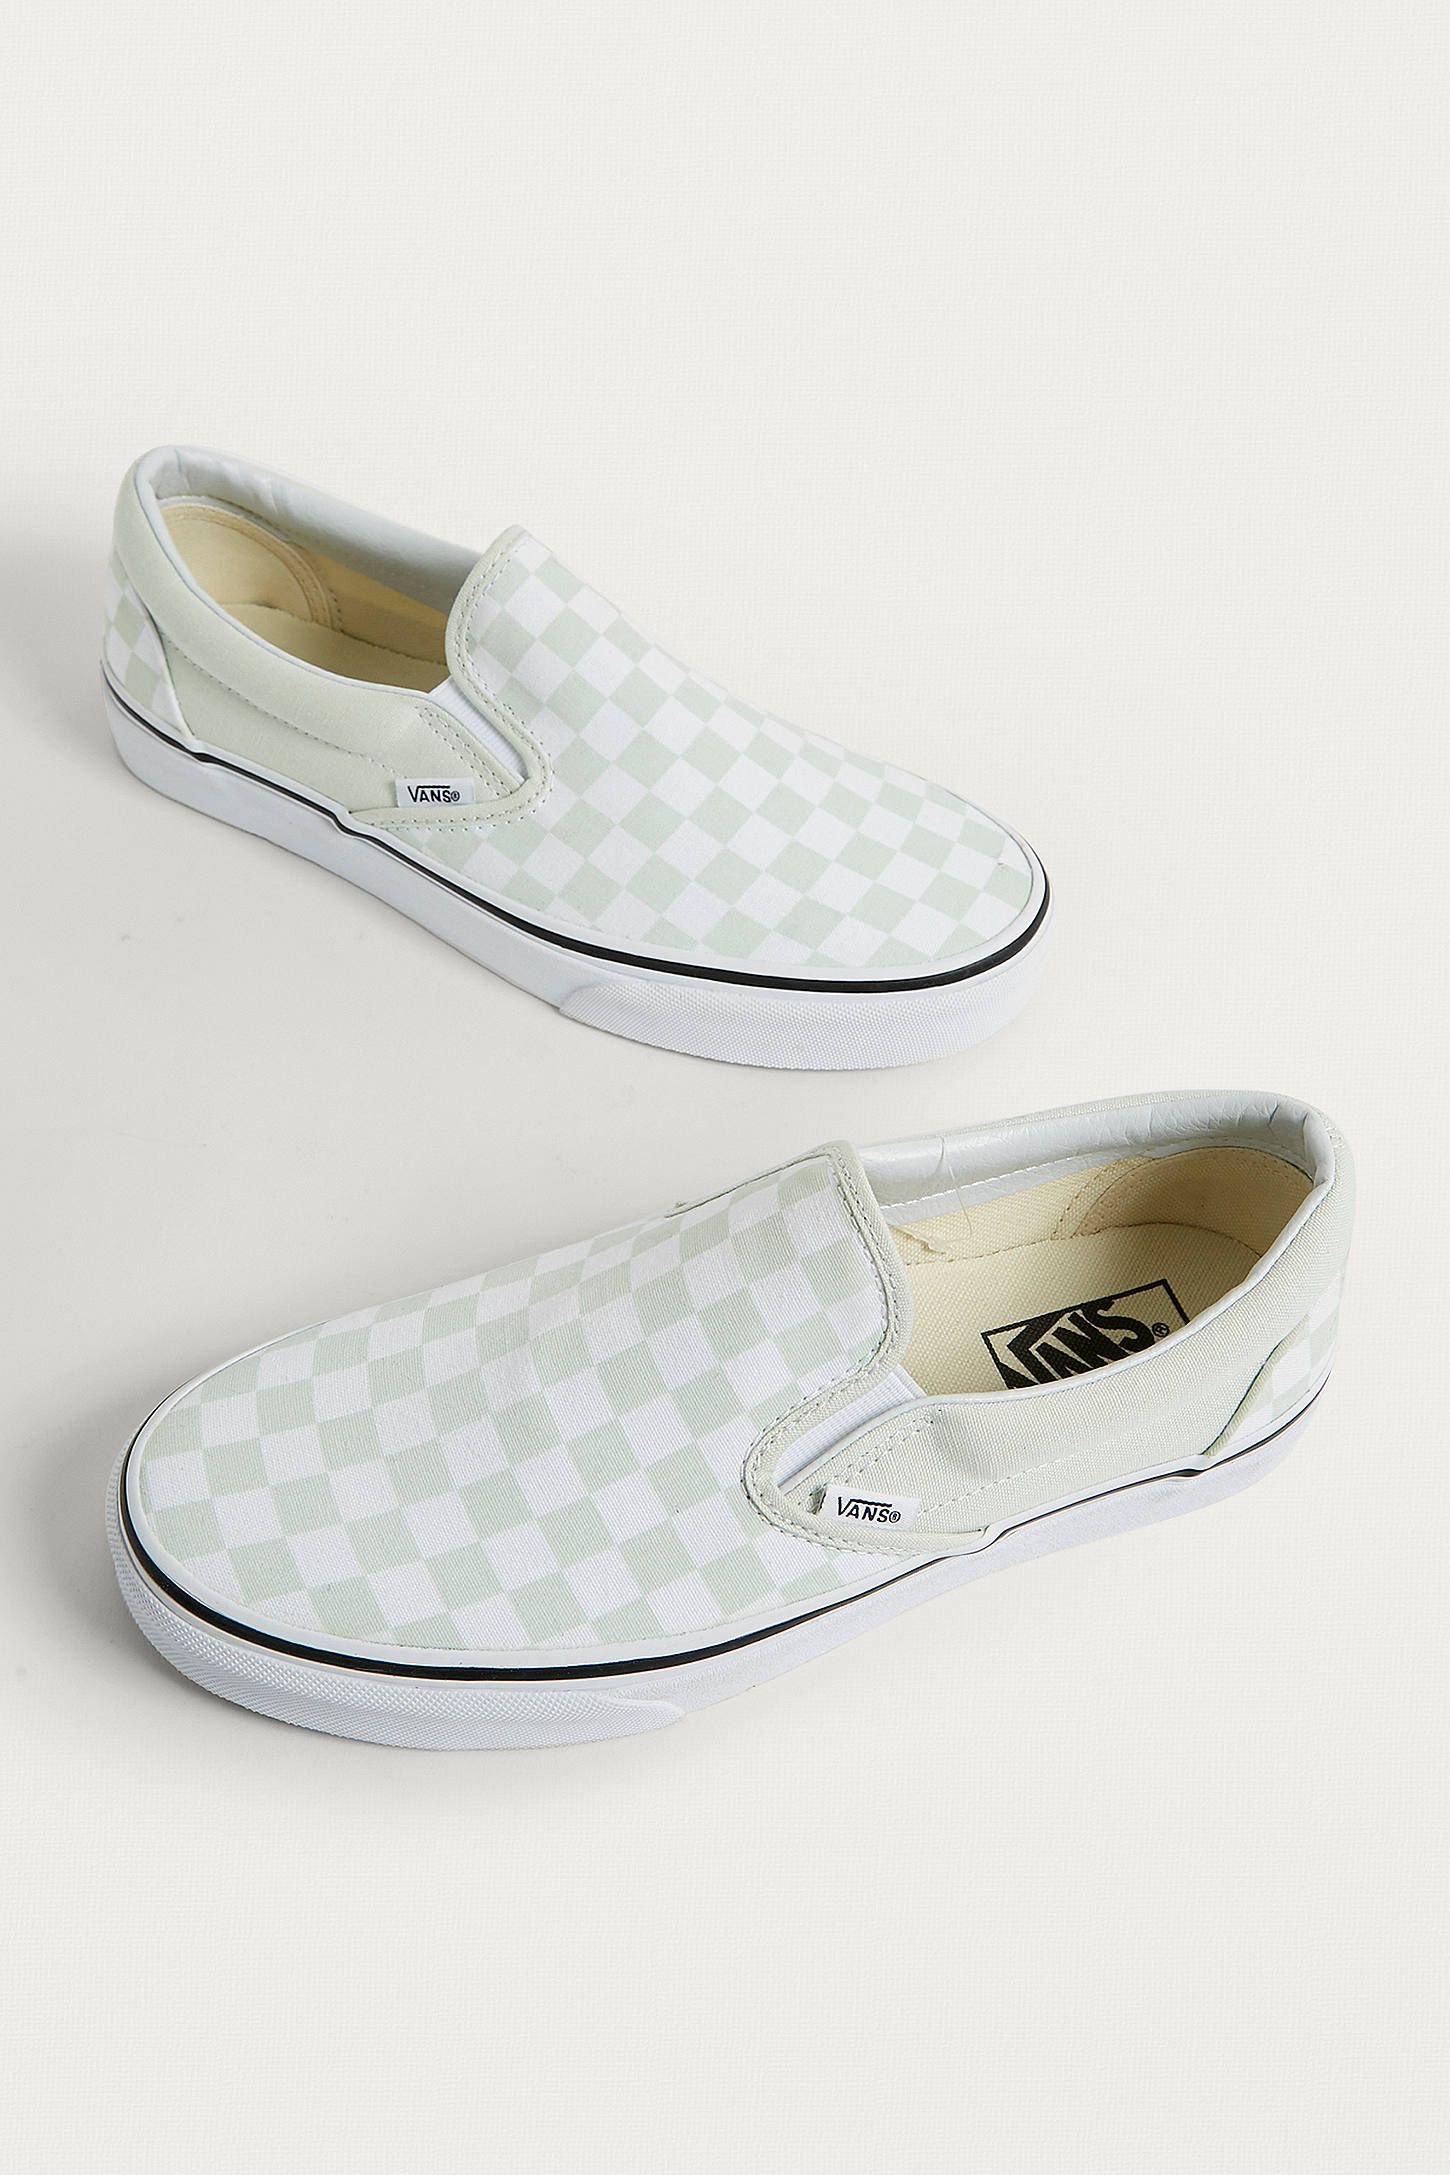 6b39280b9de2c1 Vans Classic Mint Checkerboard Slip-On Trainers